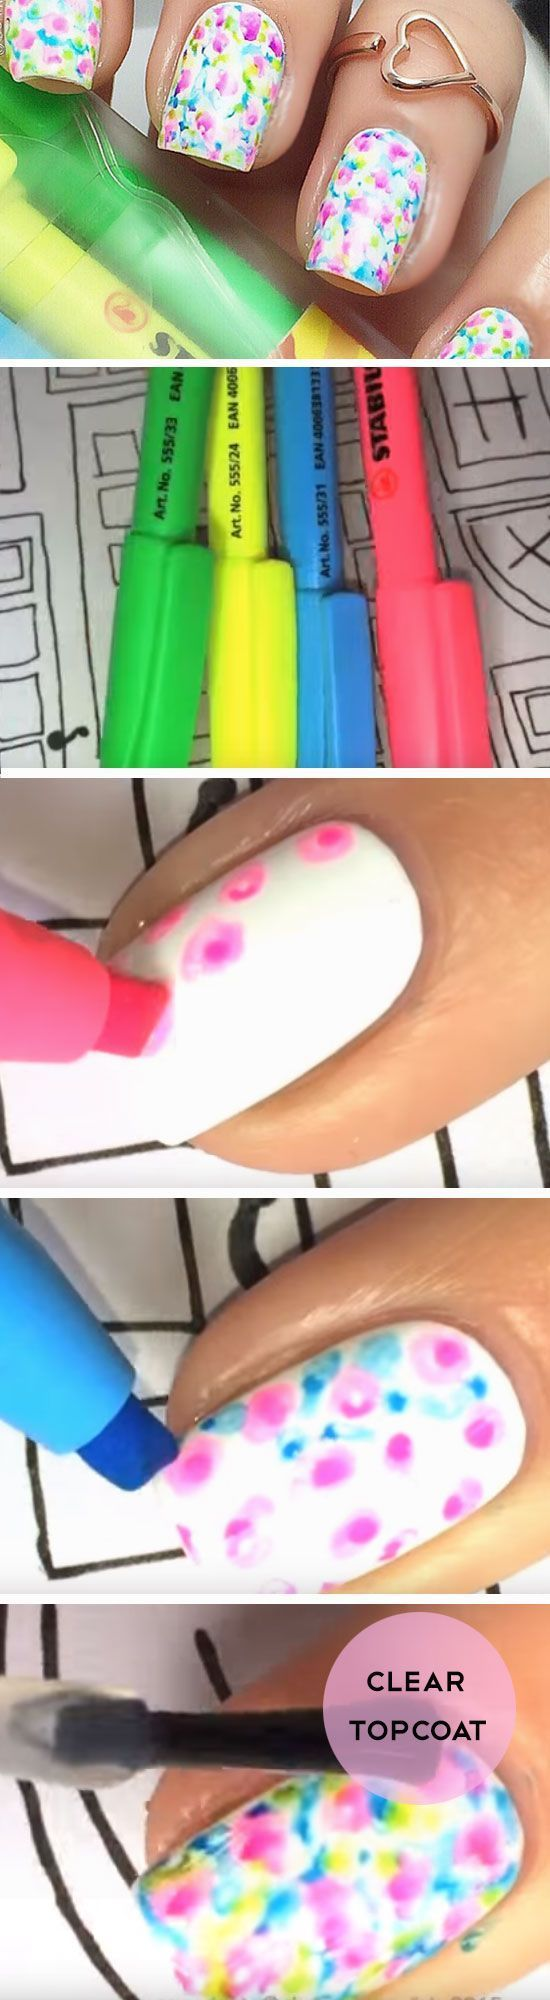 Most Trending Nail Art DIYs To Make You Go Nailalicious - Trend To Wear